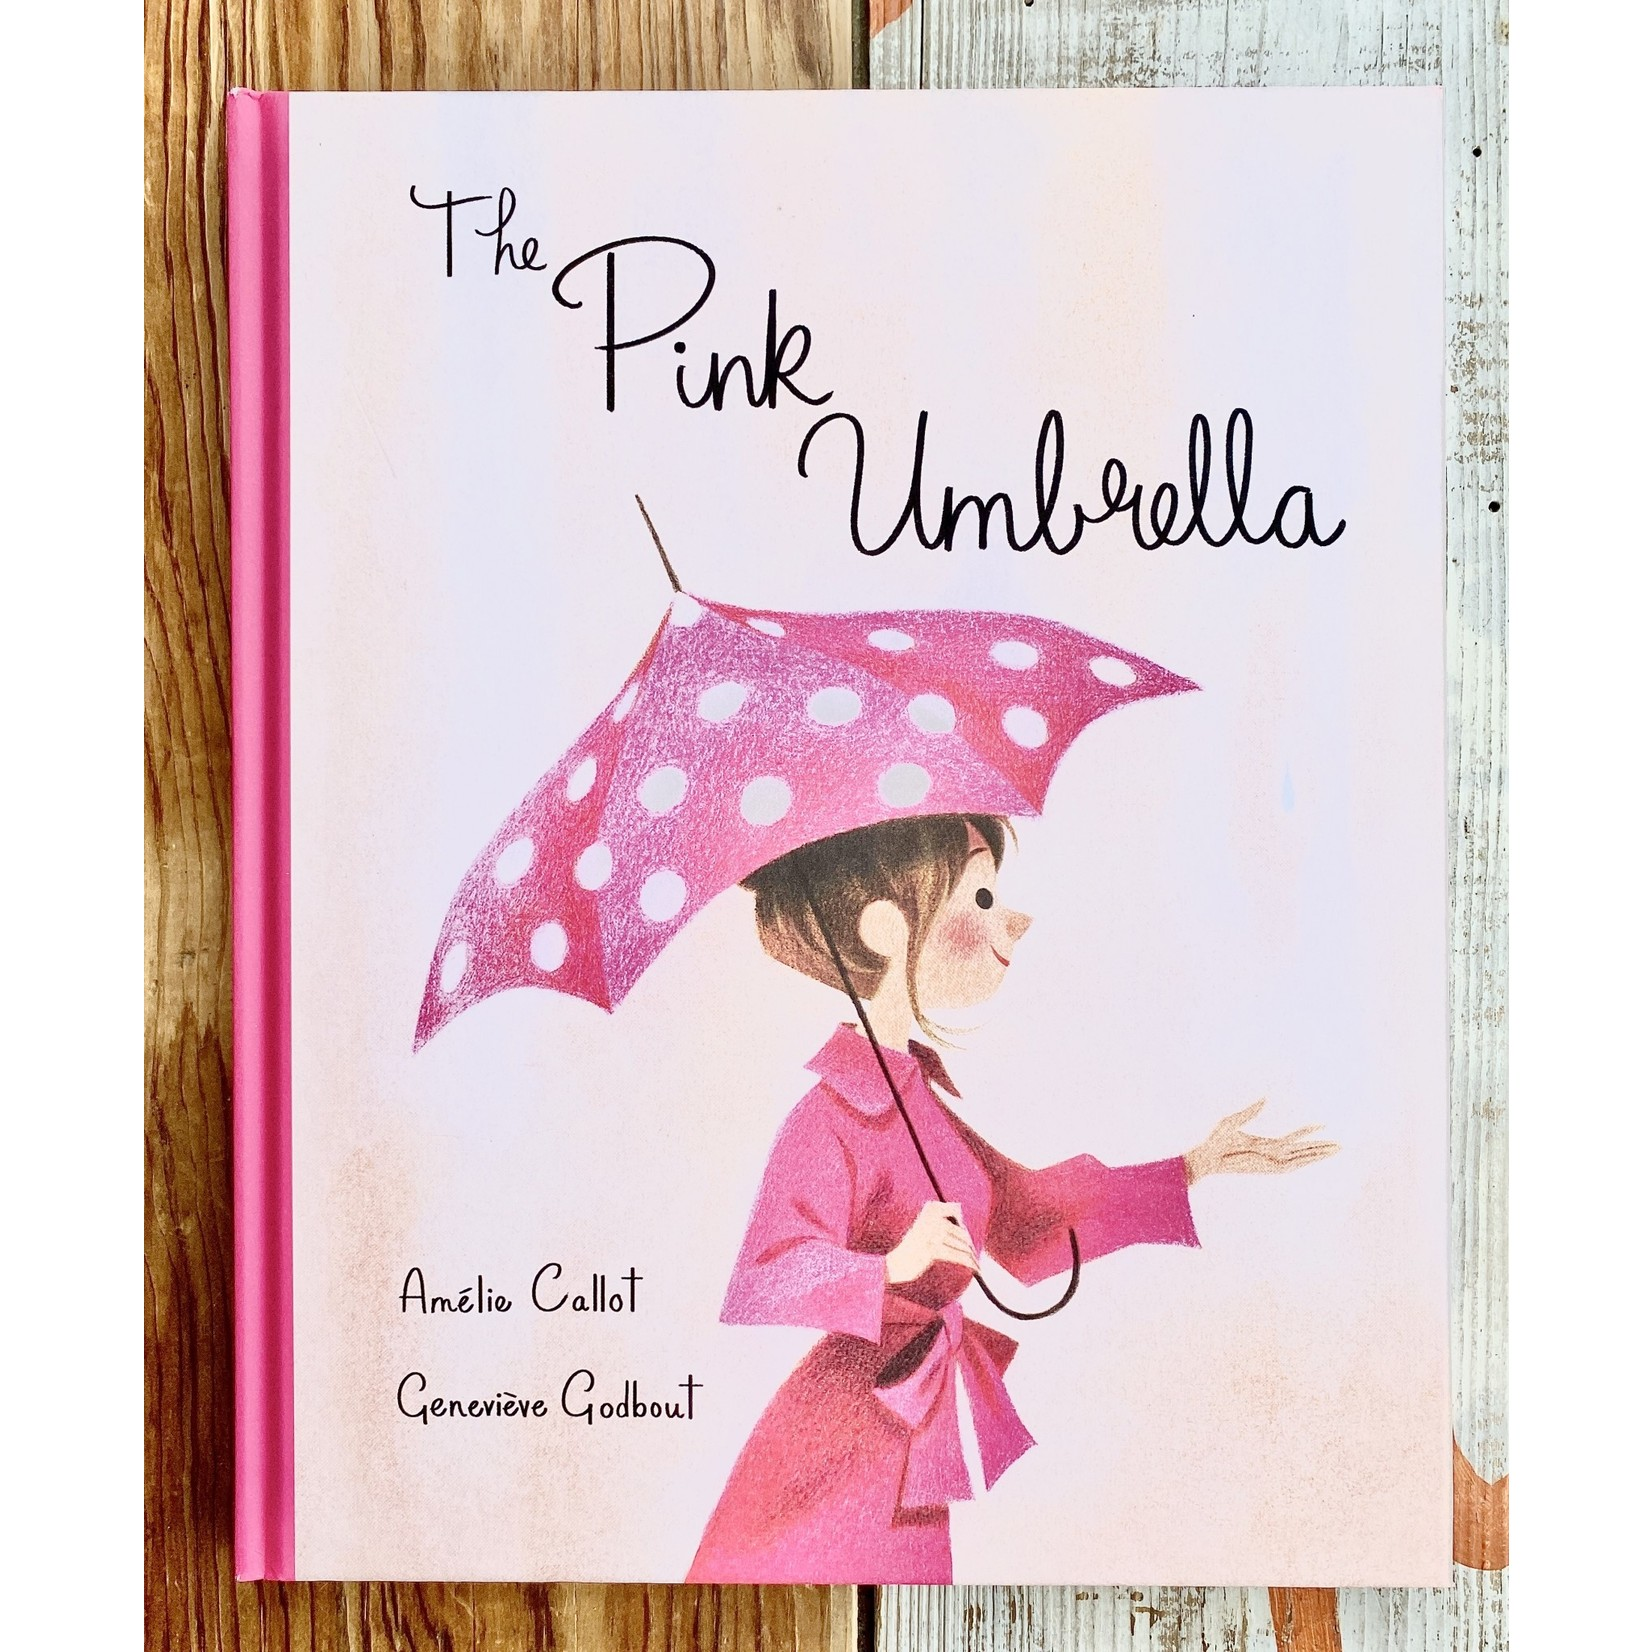 Amelie Callot & Genevieve Godbout The Pink Umbrella - Amélie Callot & Genevieve Godbout